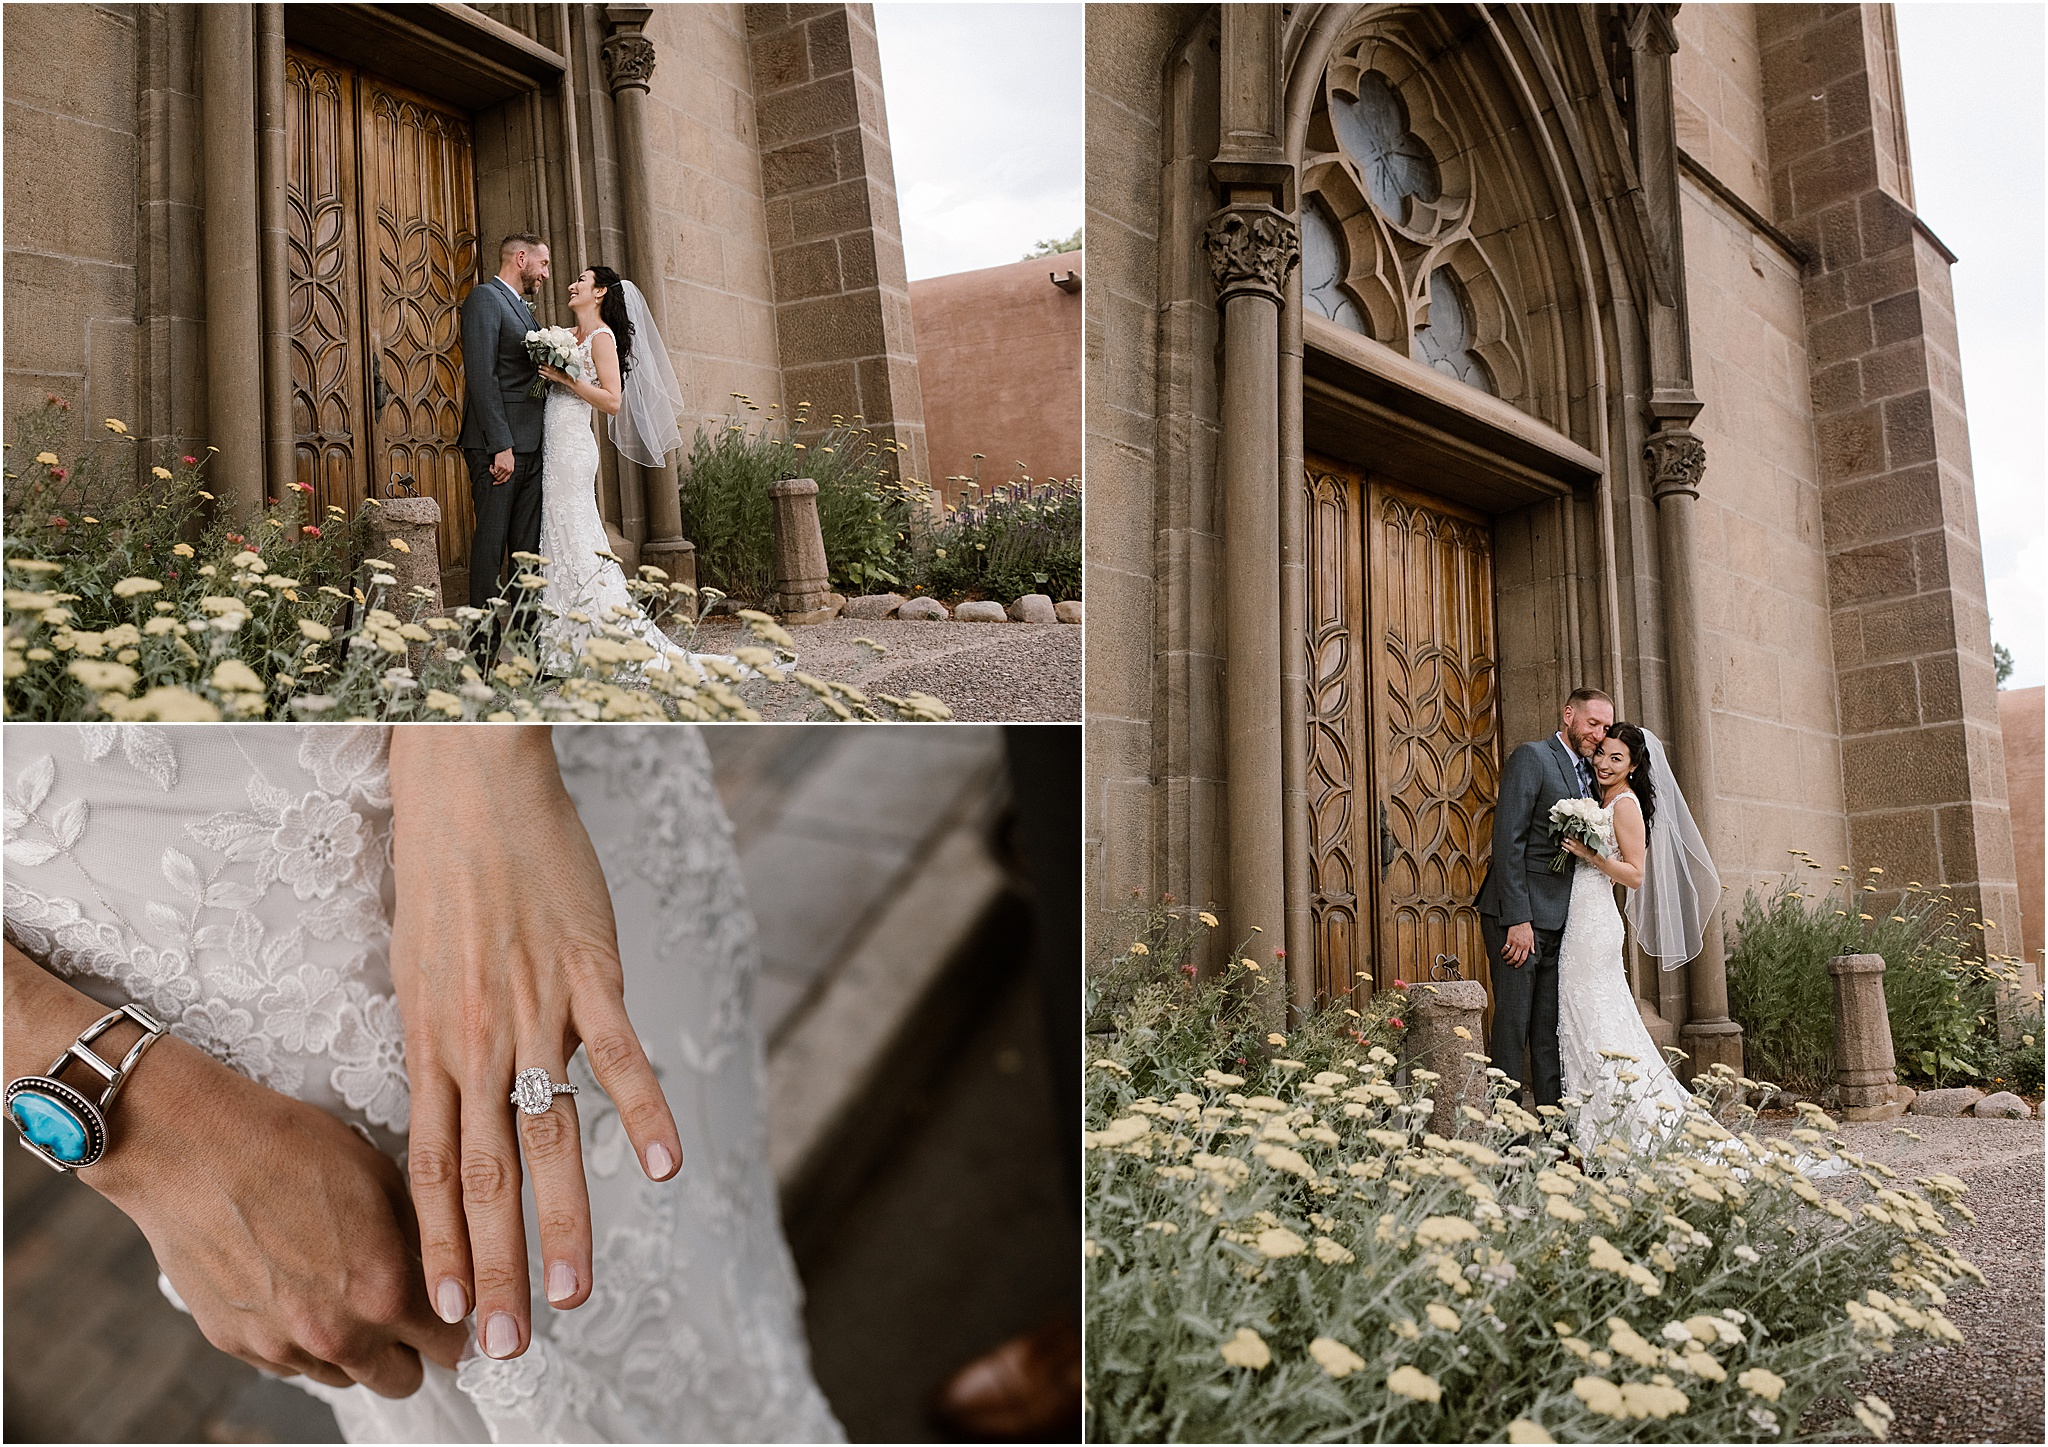 BlueRosePhotography_LaurenandCharles_LorettoChapel10